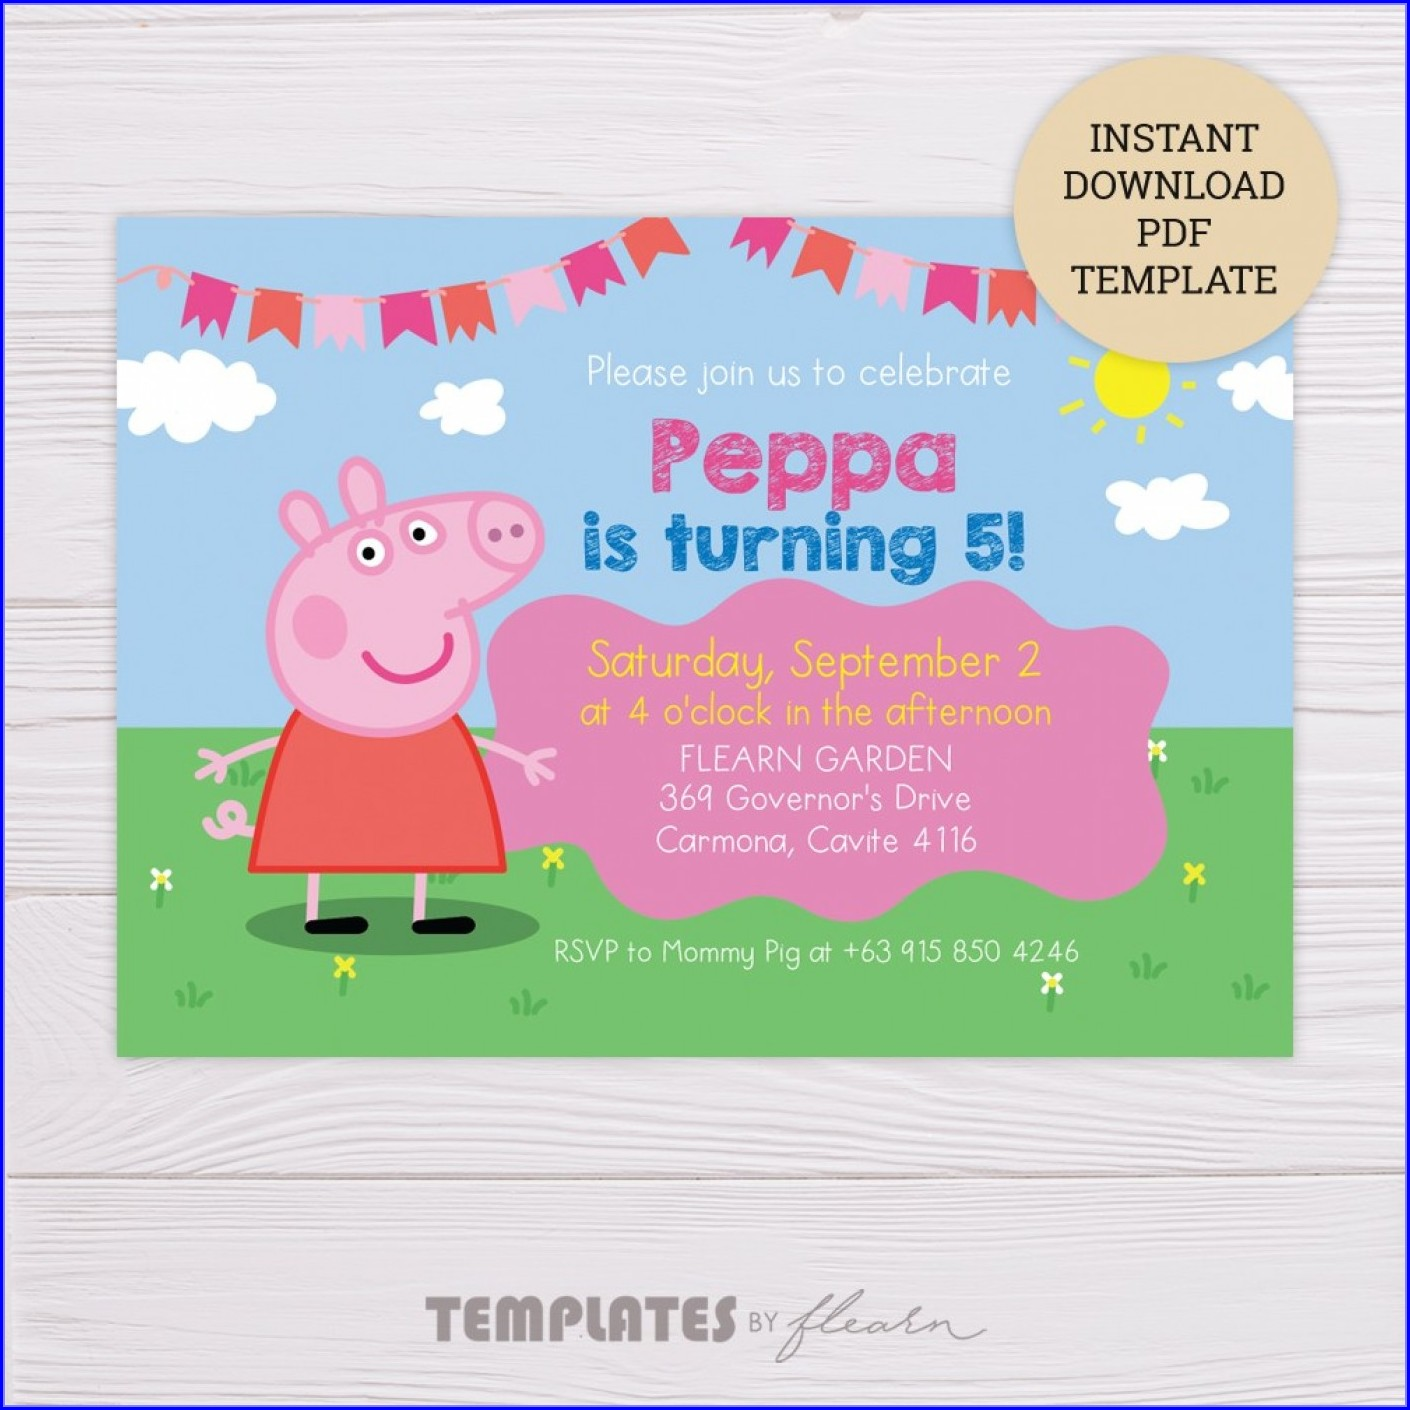 Peppa Pig Birthday Invitation Template Free